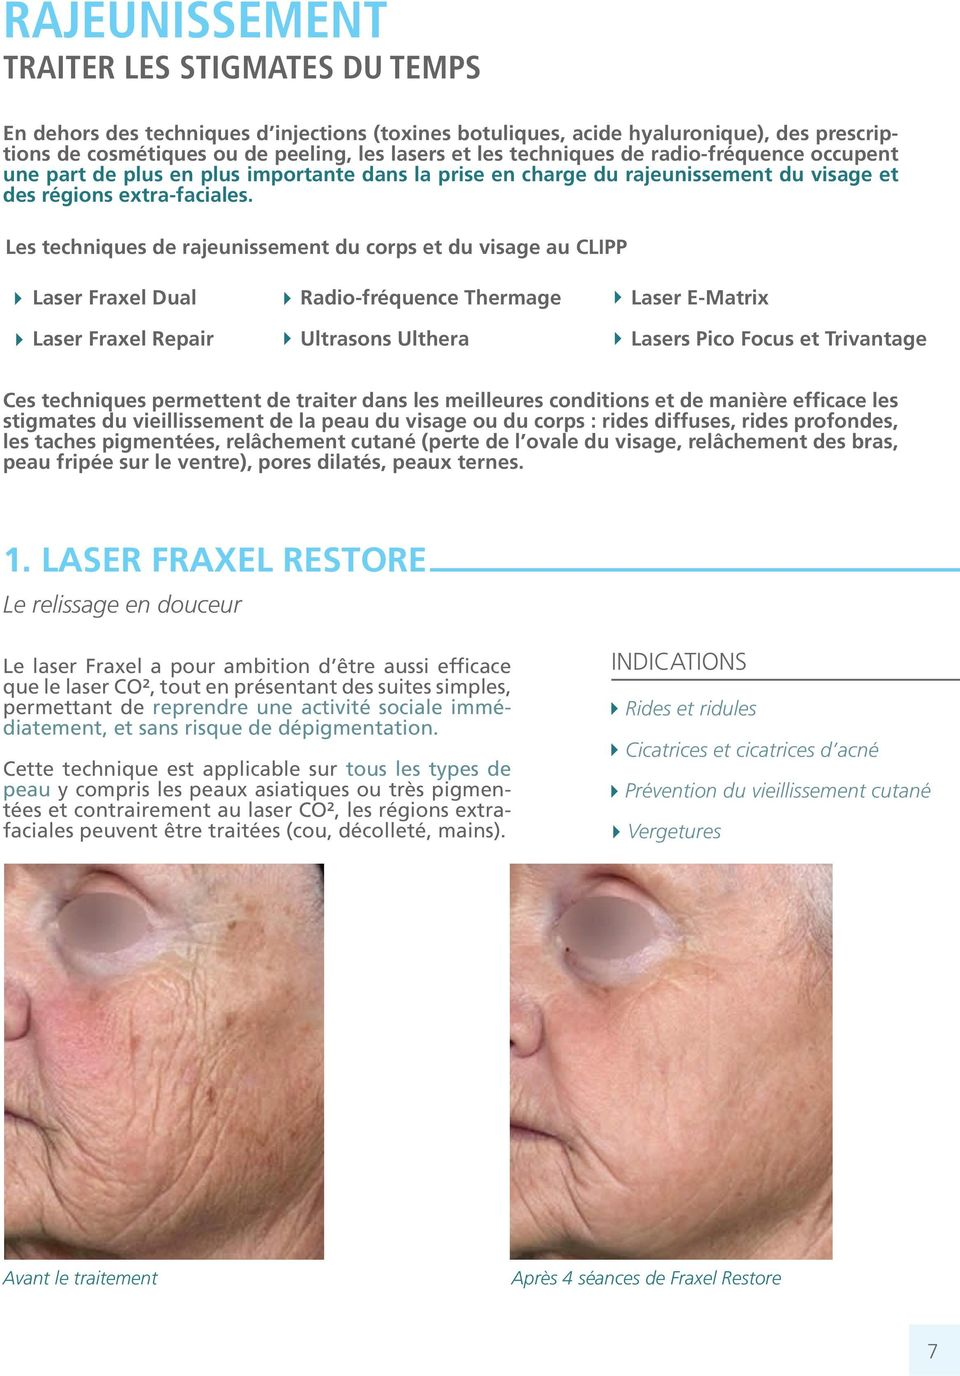 Les techniques de rajeunissement du corps et du visage au CLIPP Laser Fraxel Dual Laser Fraxel Repair Radio-fréquence Thermage Ultrasons Ulthera Laser E-Matrix Lasers Pico Focus et Trivantage Ces